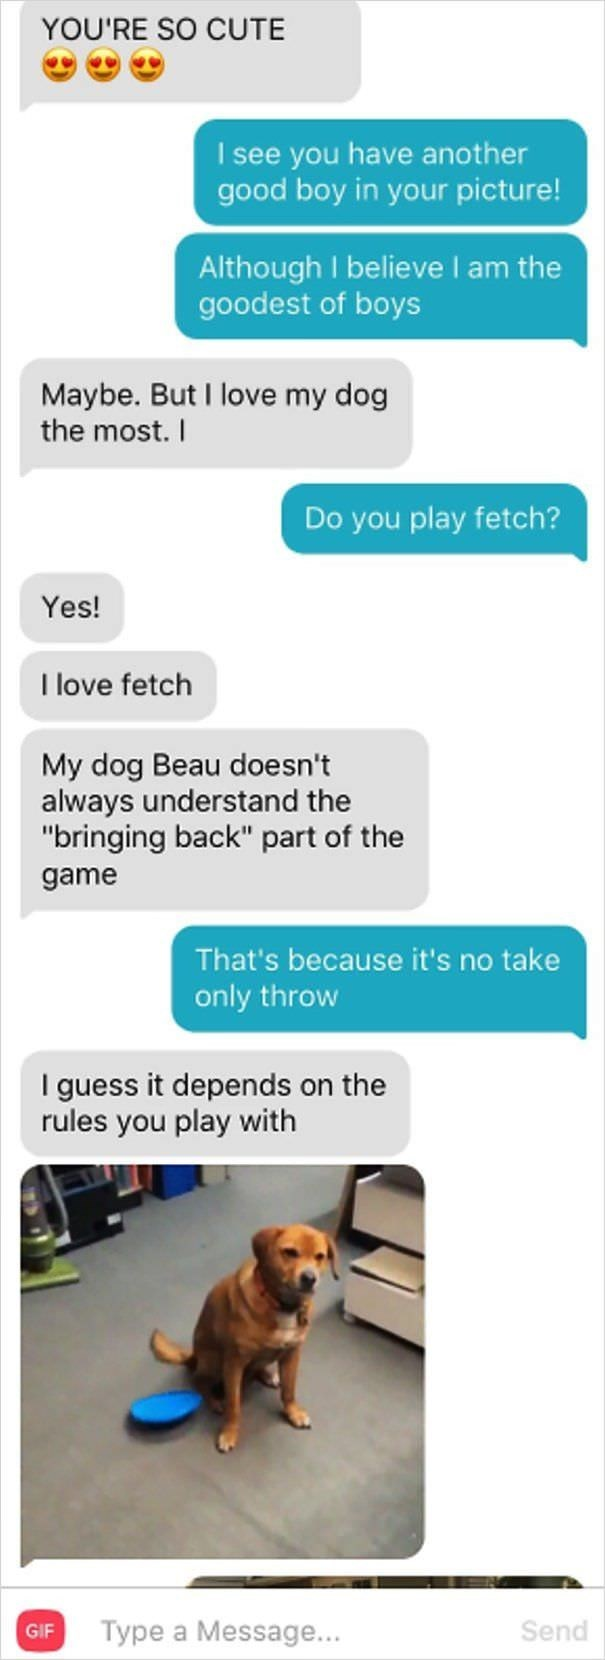 """Text - YOU'RE SO CUTE I see you have another good boy in your picture! Although I believe I am the goodest of boys Maybe. But I love my dog the most. I Do you play fetch? Yes! I love fetch My dog Beau doesn't always understand the """"bringing back"""" part of the game That's because it's no take only throw I guess it depends on the rules you play with Send Type a Message... GIF"""